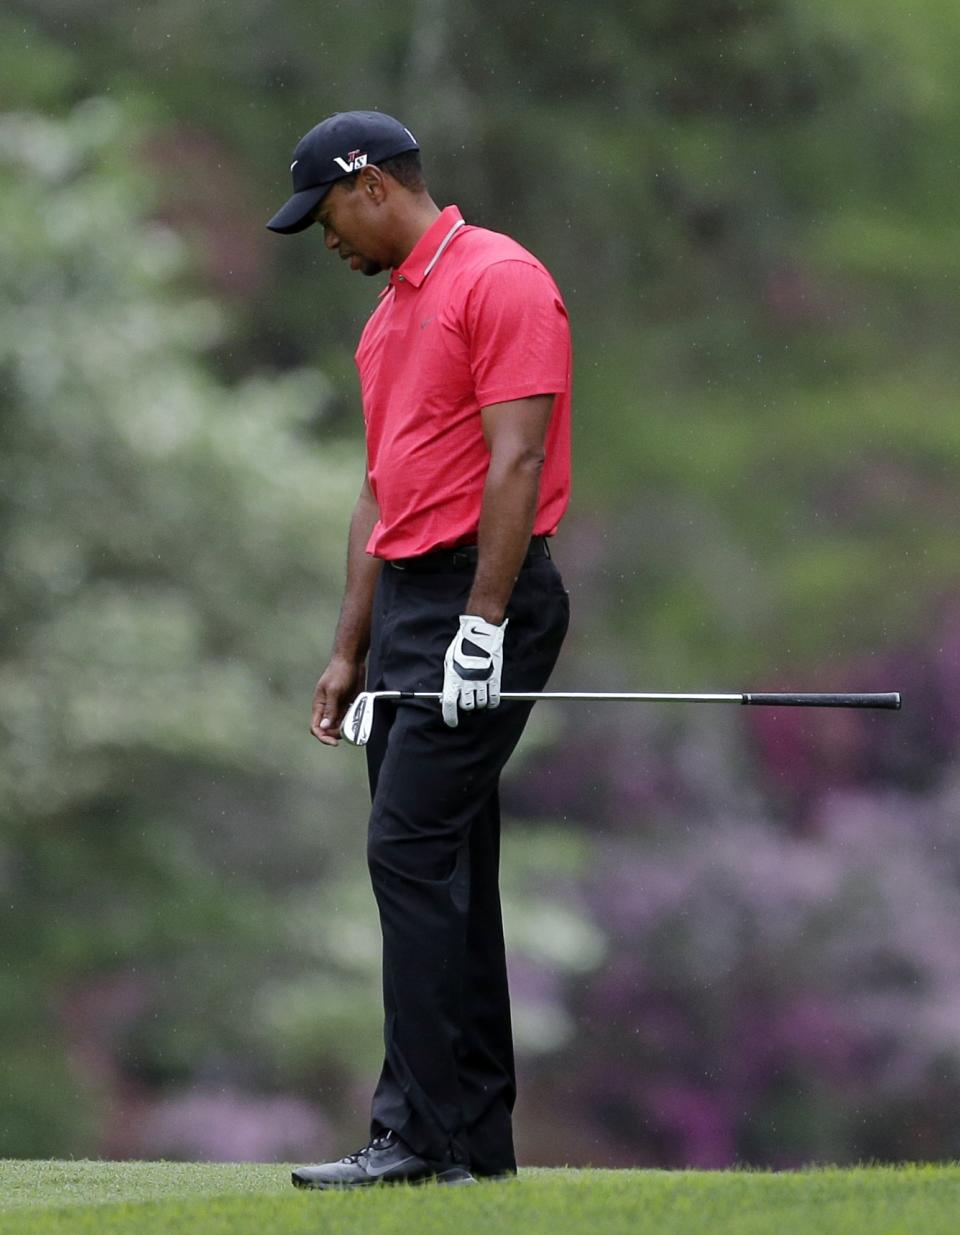 Tiger Woods reacts after his approach shot to the 14th hole during the fourth round of the Masters golf tournament Sunday, April 14, 2013, in Augusta, Ga. (AP Photo/Charlie Riedel)